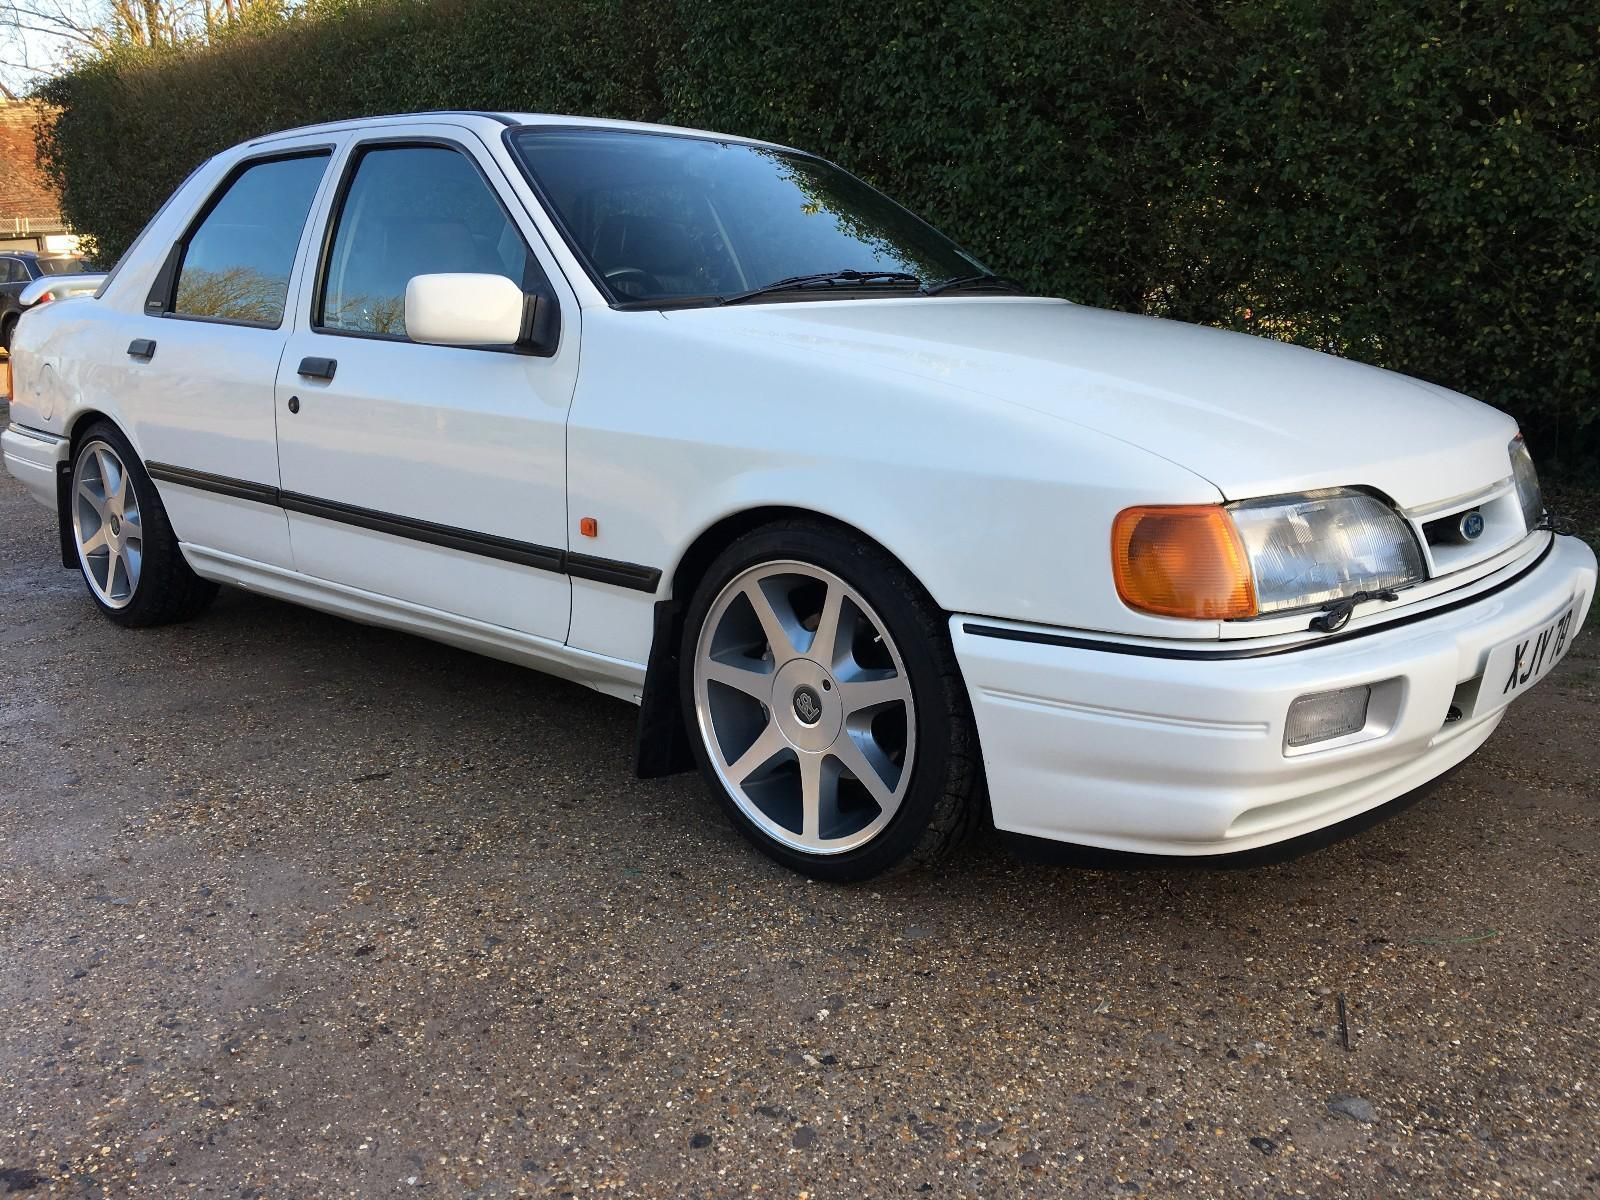 Sierra Cosworth Coches Clasicos Ford Orion Autos